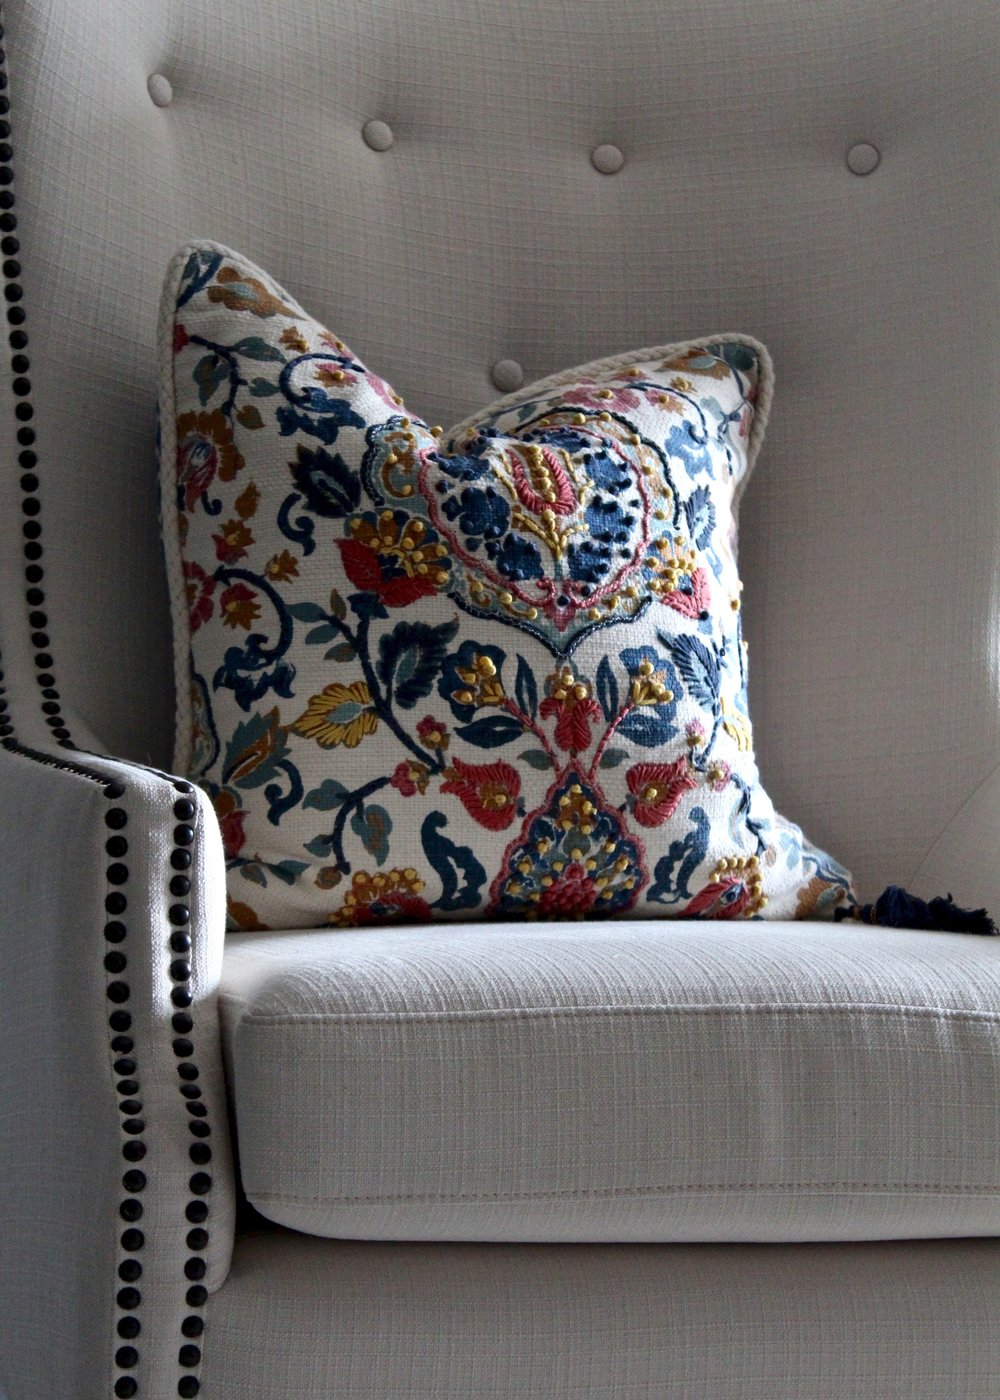 We found this bold toss pillow and loved how detailed the embroidery was. Down to the little tassel, I loved it. I have some future plans to incorporate some aspects of this pillow into other designs for P&W, too.